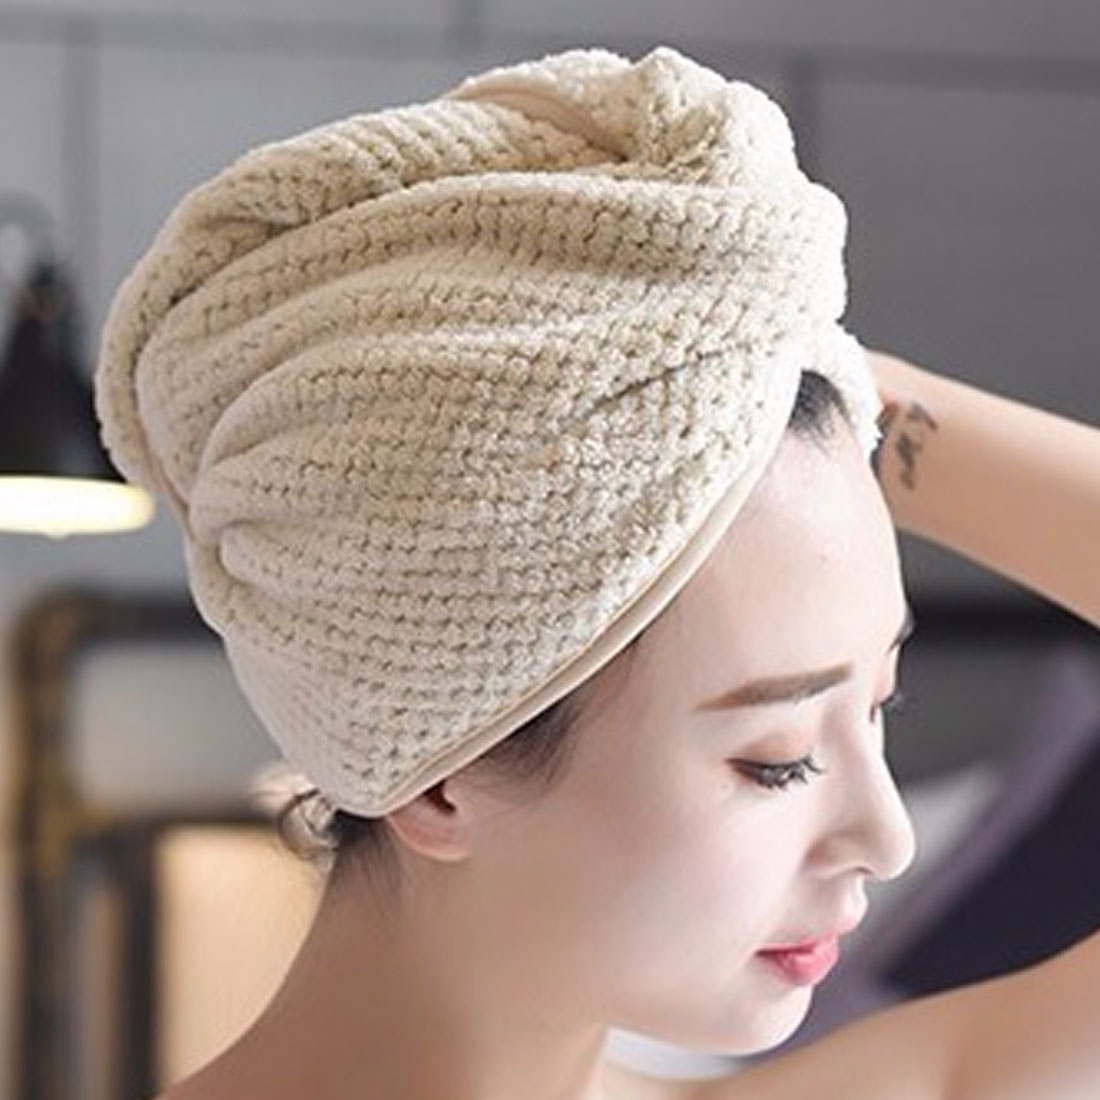 1pcs Coral Velvet Dry Hair Bath Towel Microfiber Quick Drying Turban Super Absorbent Women Hair Cap Wrap with Button